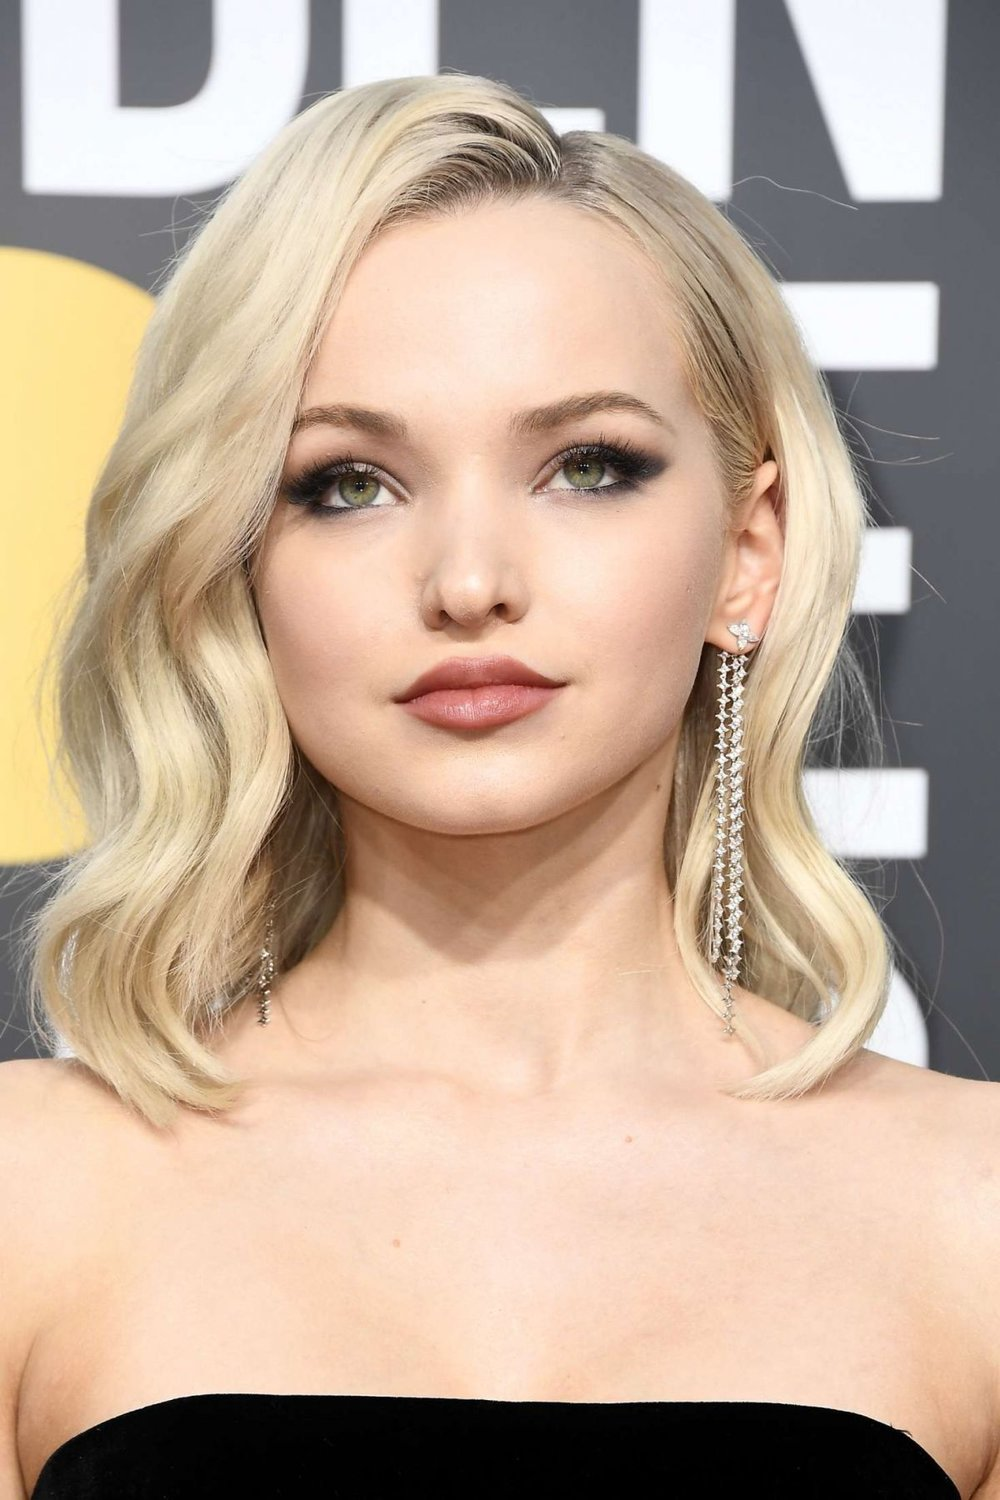 dove-cameron-at-2018-golden-globe-awards-in-beverly-hills-0.jpg